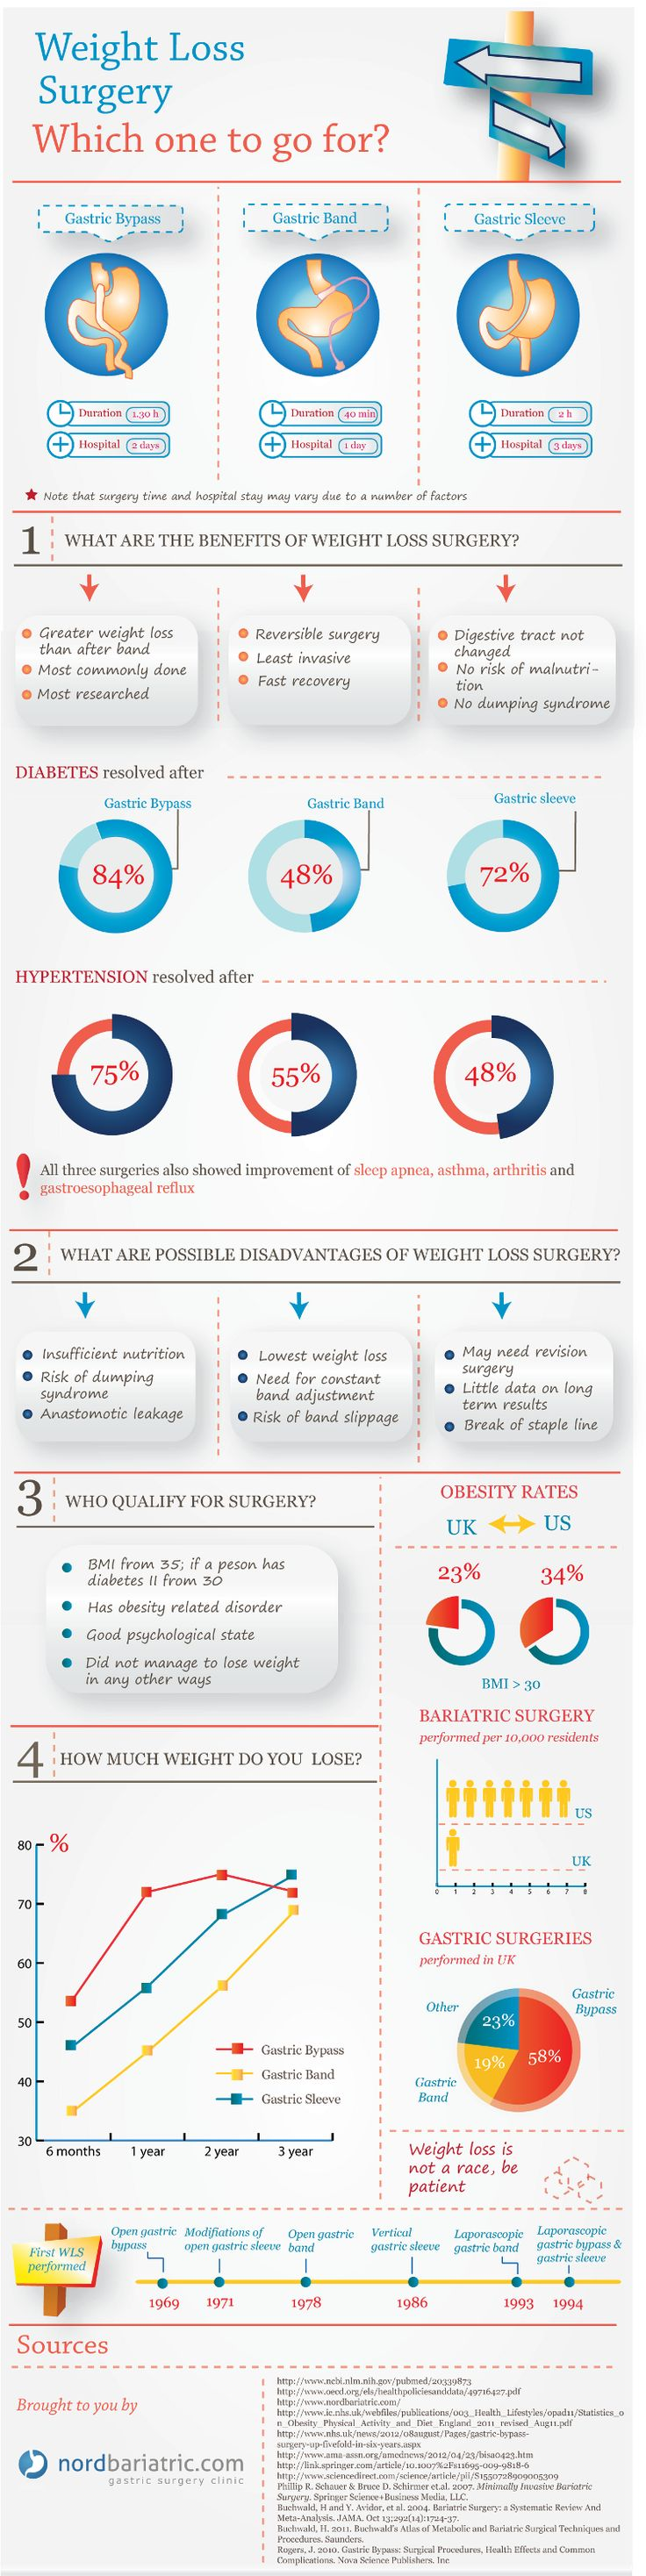 The infographic looks at three main surgeries done worldwide Gastric Bypass Roux-en-Y, Gastric Band and Gastric Sleeve. The goal of the infographic is